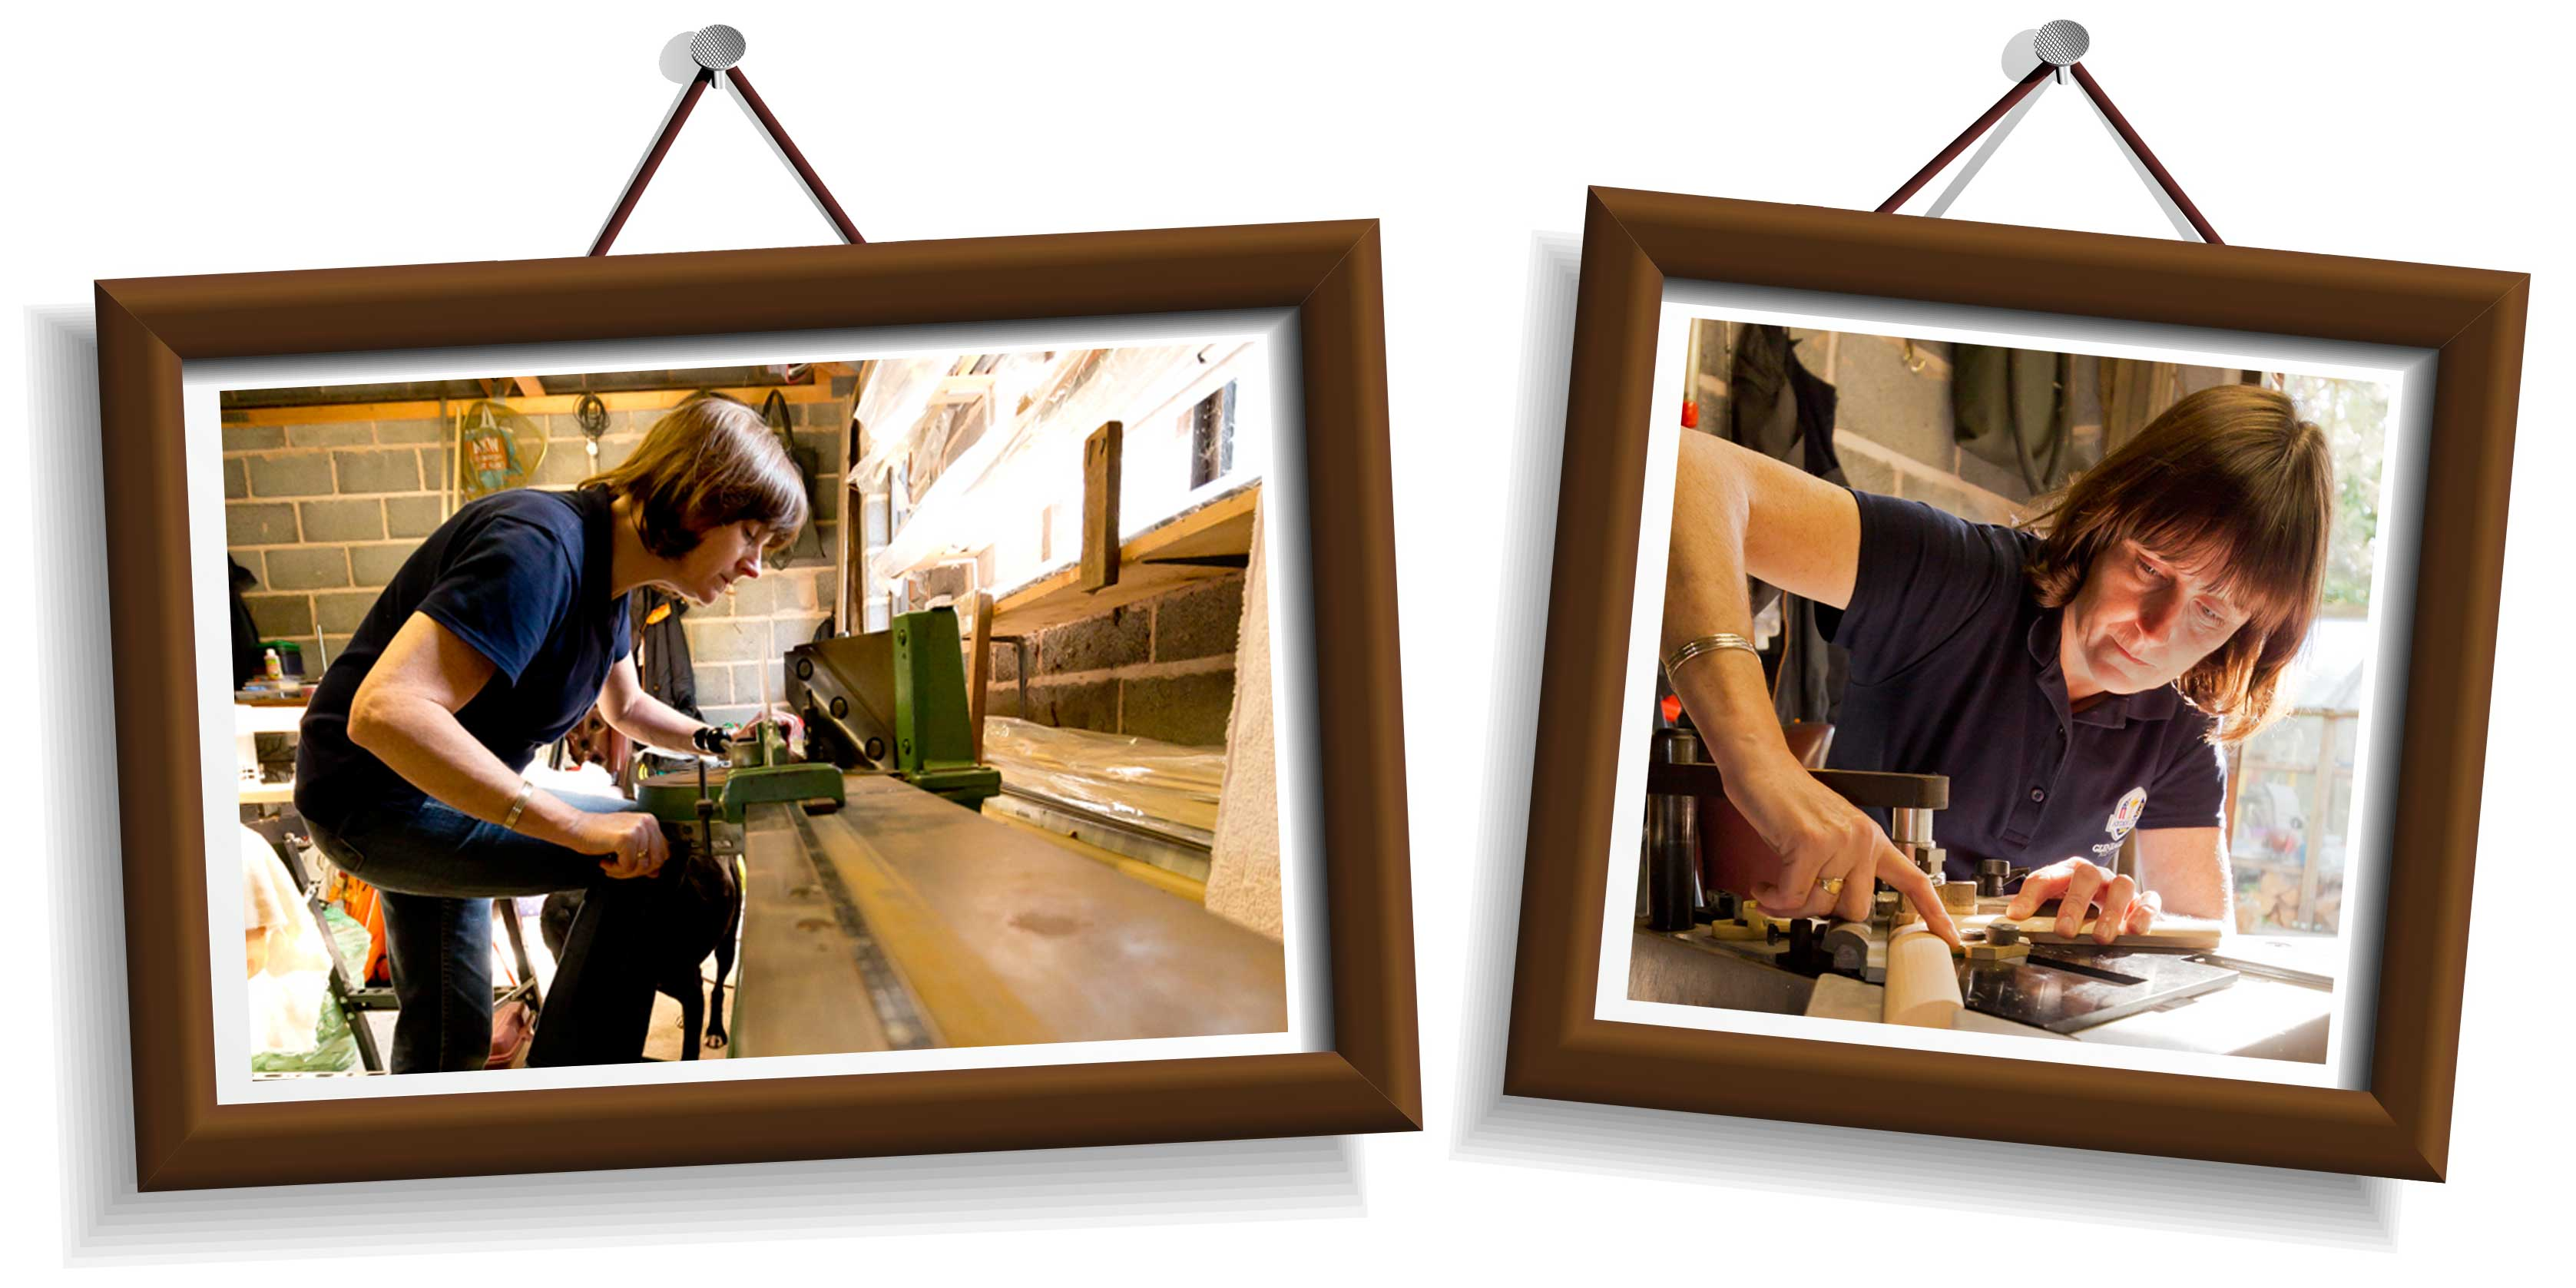 Dorable Framing Services Photo - Picture Frame Ideas ...